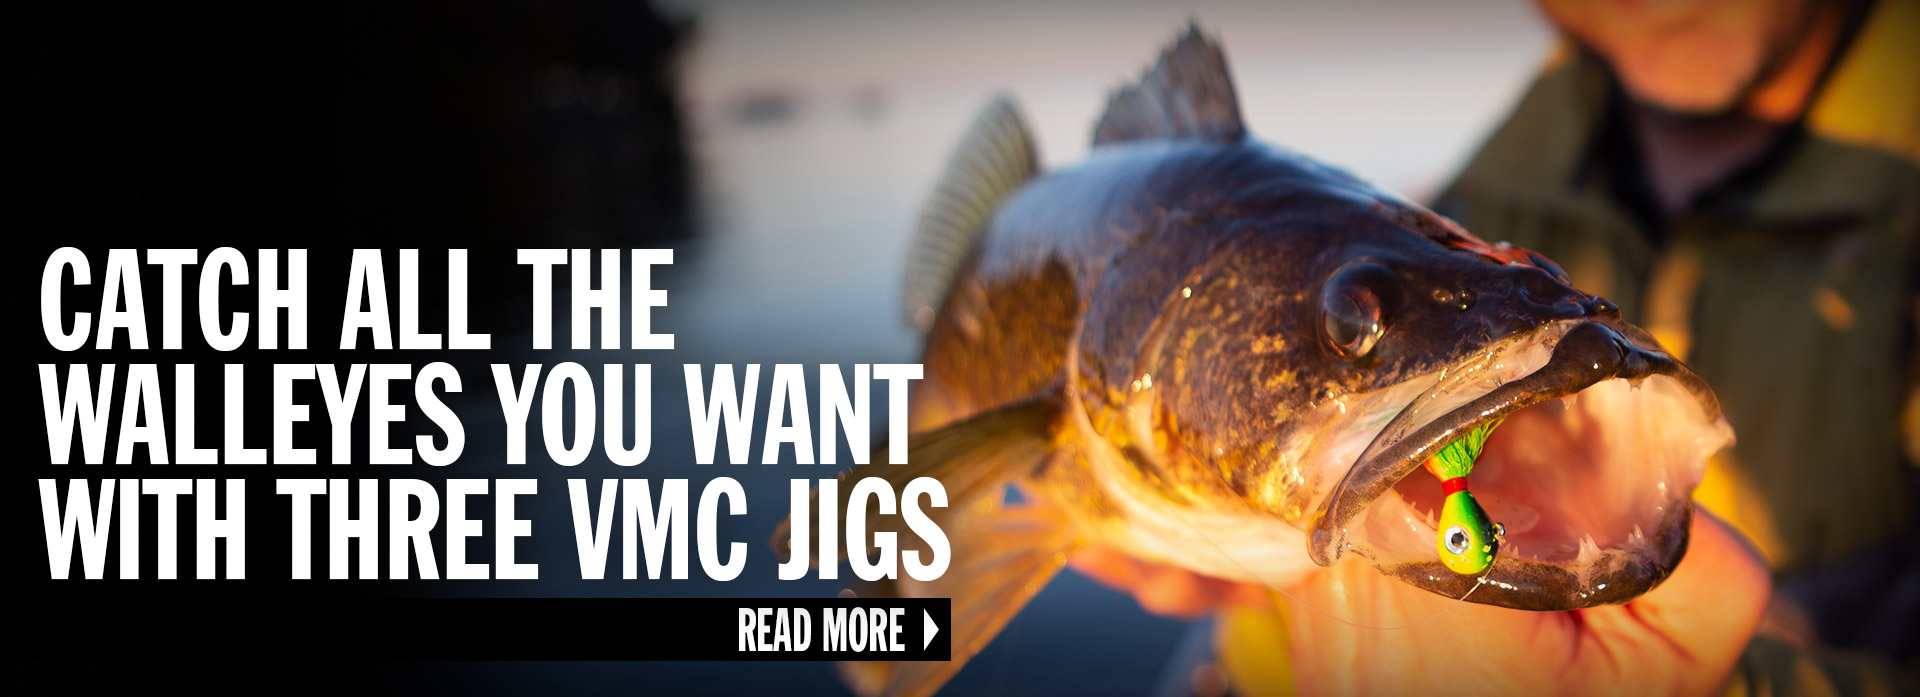 Catch All The Walleyes You Want With Three VMC Jigs